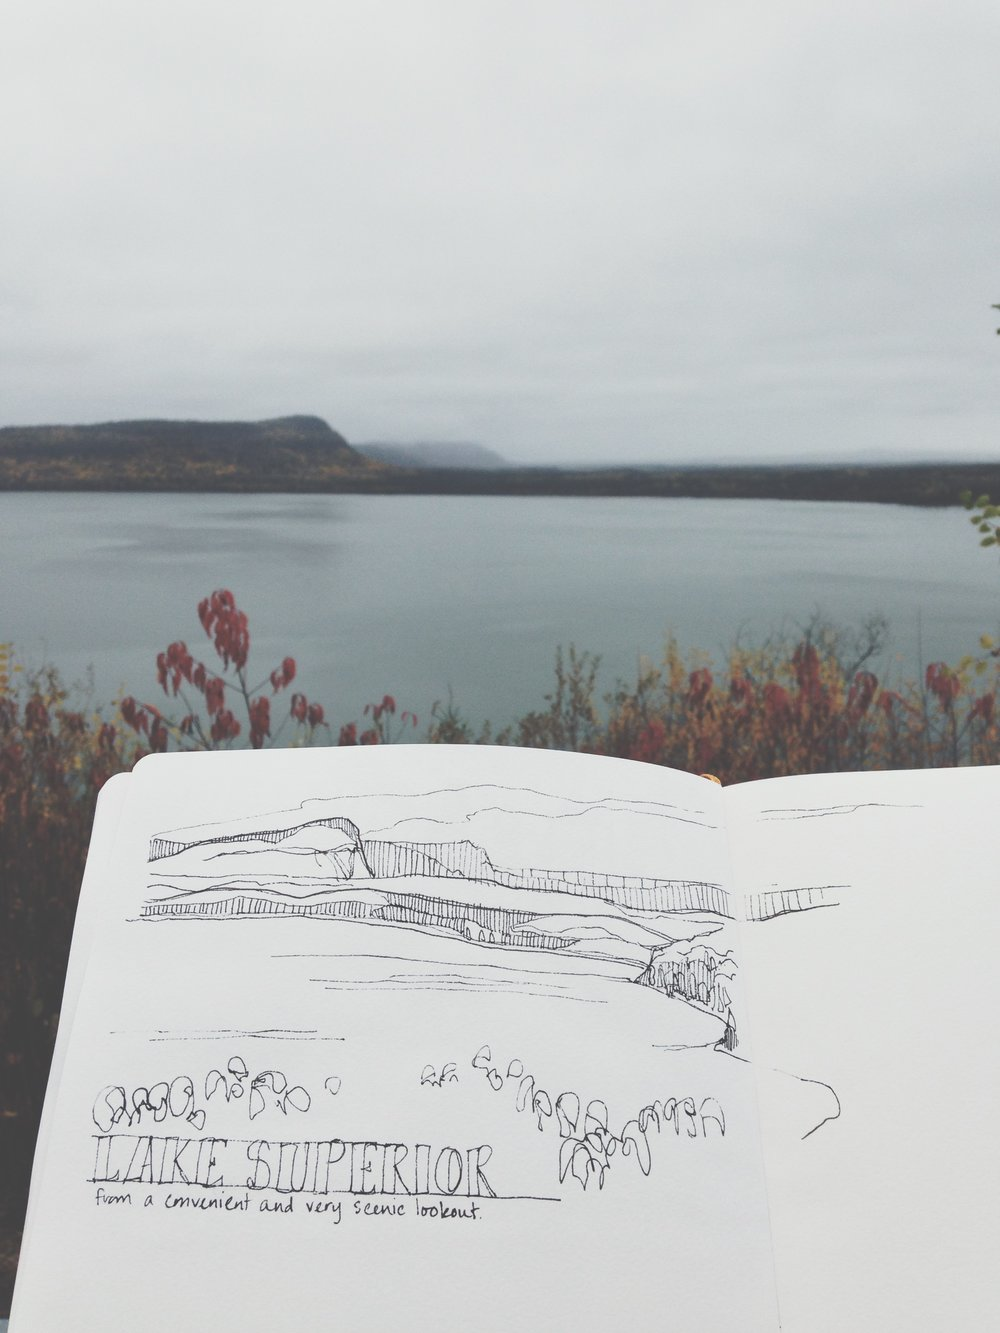 it rained all day when i left Thunder Bay, but held off for about an hour, so i parked at a scenic lookout and made a quick sketch.